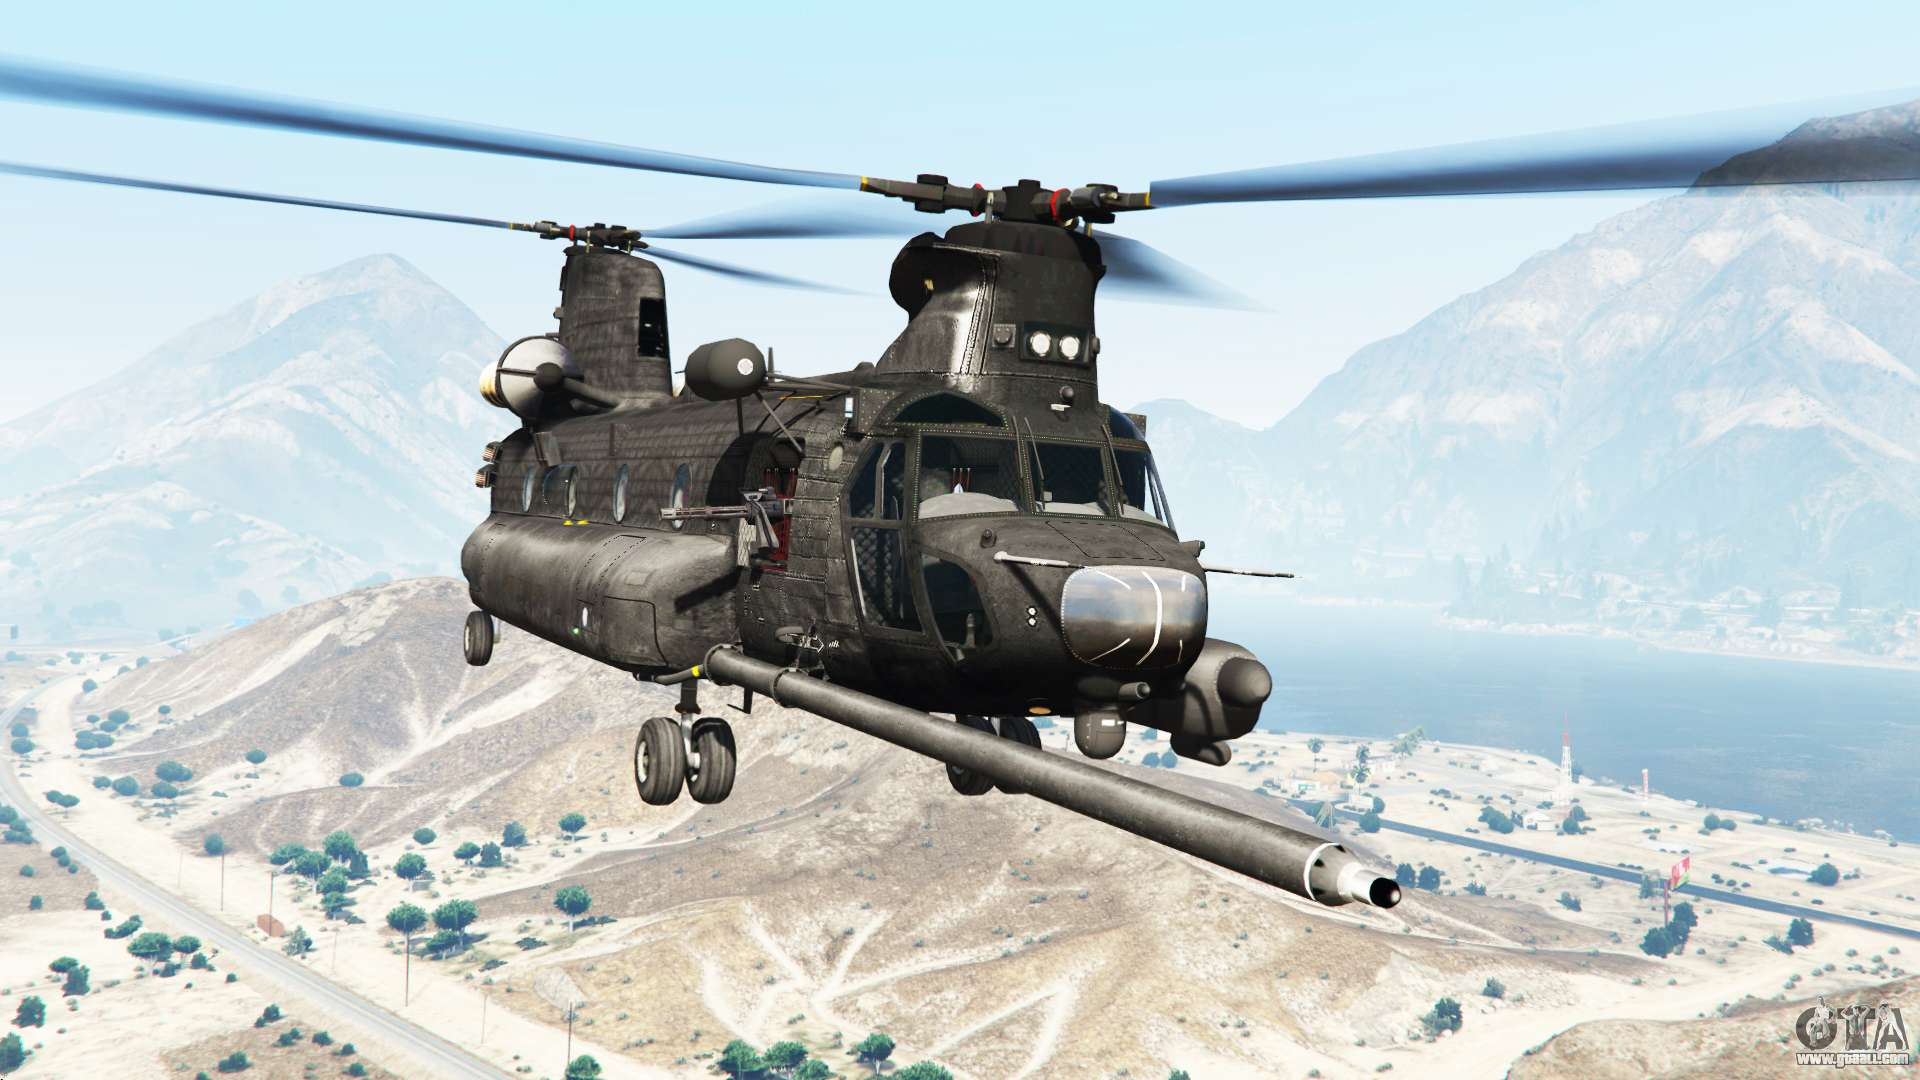 gta san andreas helicopter mods with 97532 Boeing Mh 47g Chinook Replace on 2 moreover 124 volvobus additionally 3666 Ufo Atack in addition 25729 Rabota Pilotom likewise 97532 Boeing Mh 47g Chinook Replace.